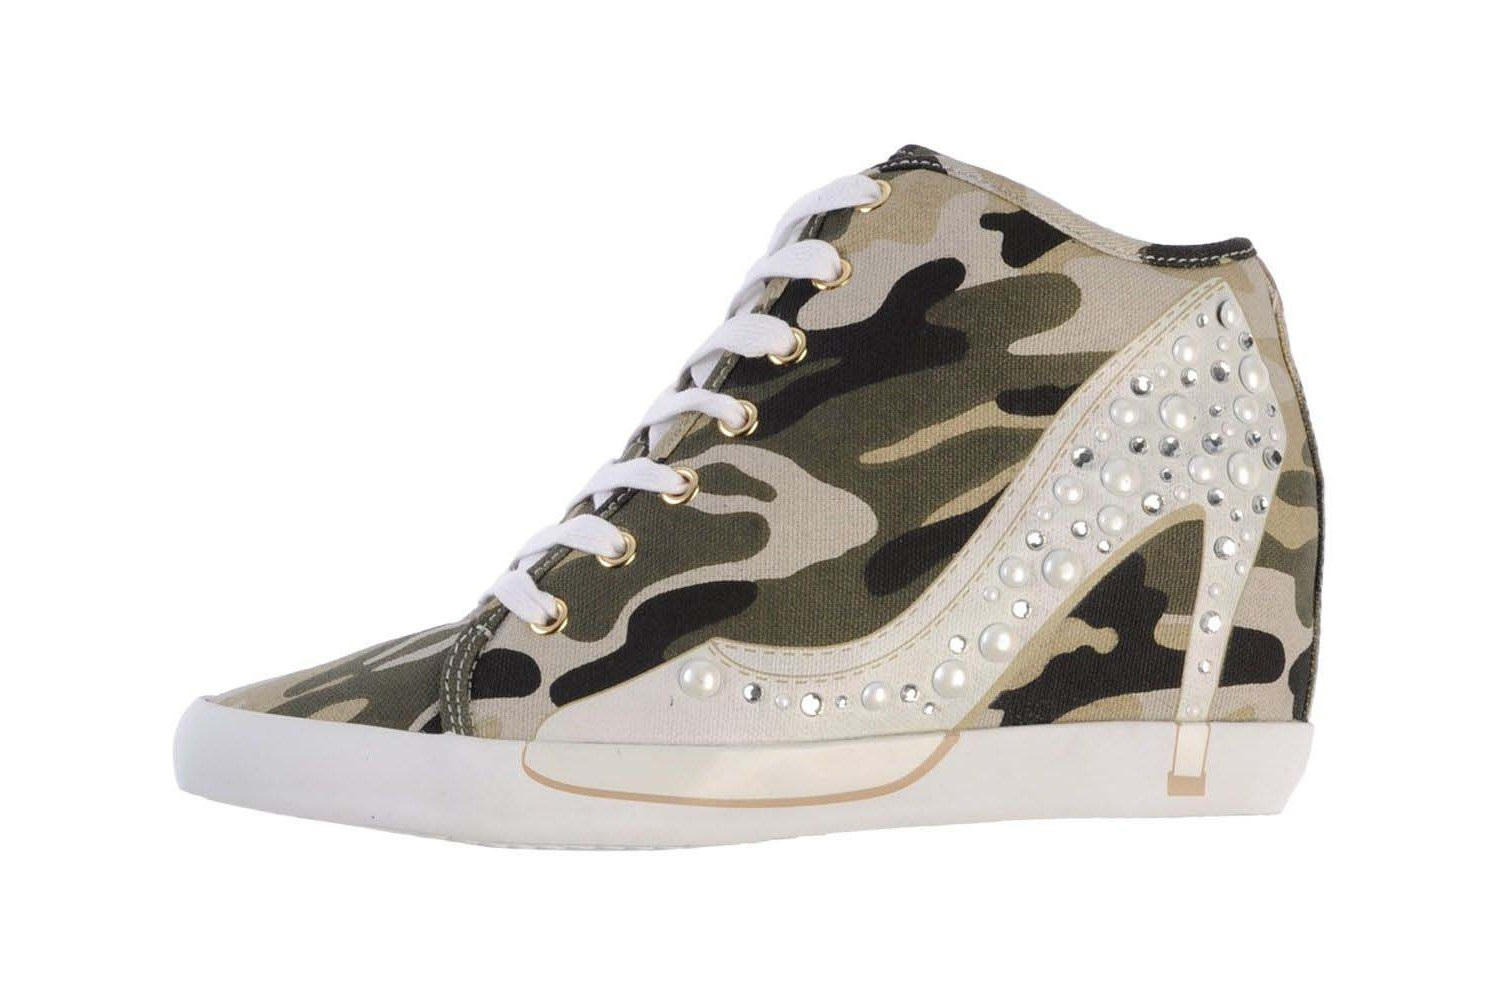 olo wedge sneakers